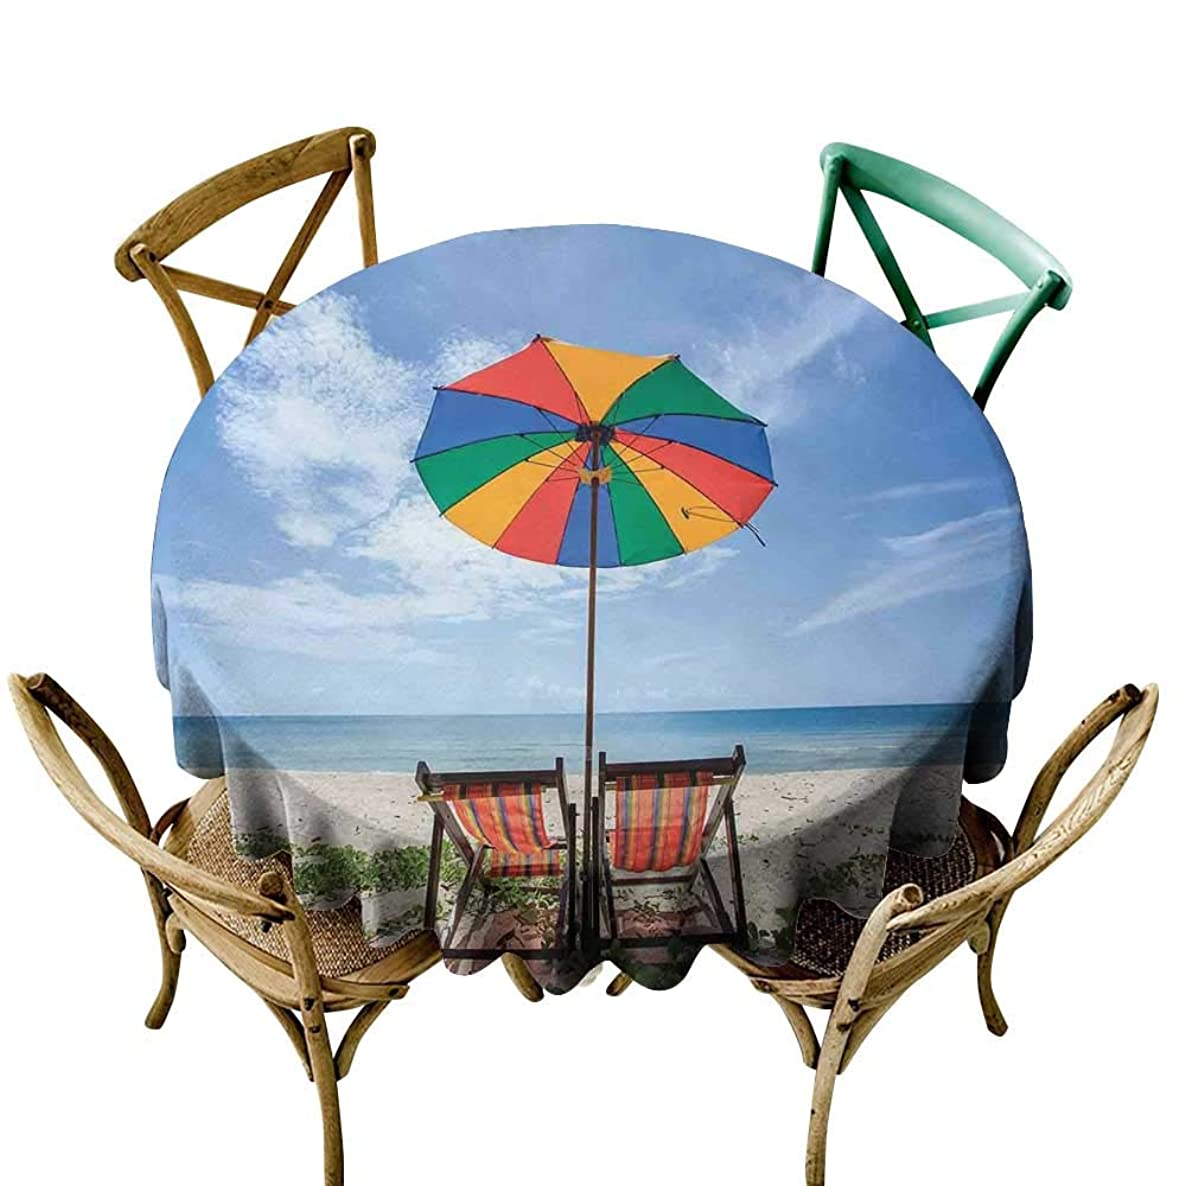 Outdoor Tablecloth 36 inch Seaside,Pair of Chairs and Colorful Umbrella on The Beach Seaside Holiday Travel Image,Multicolor Indoor/Outdoor Spillproof Table Cloth